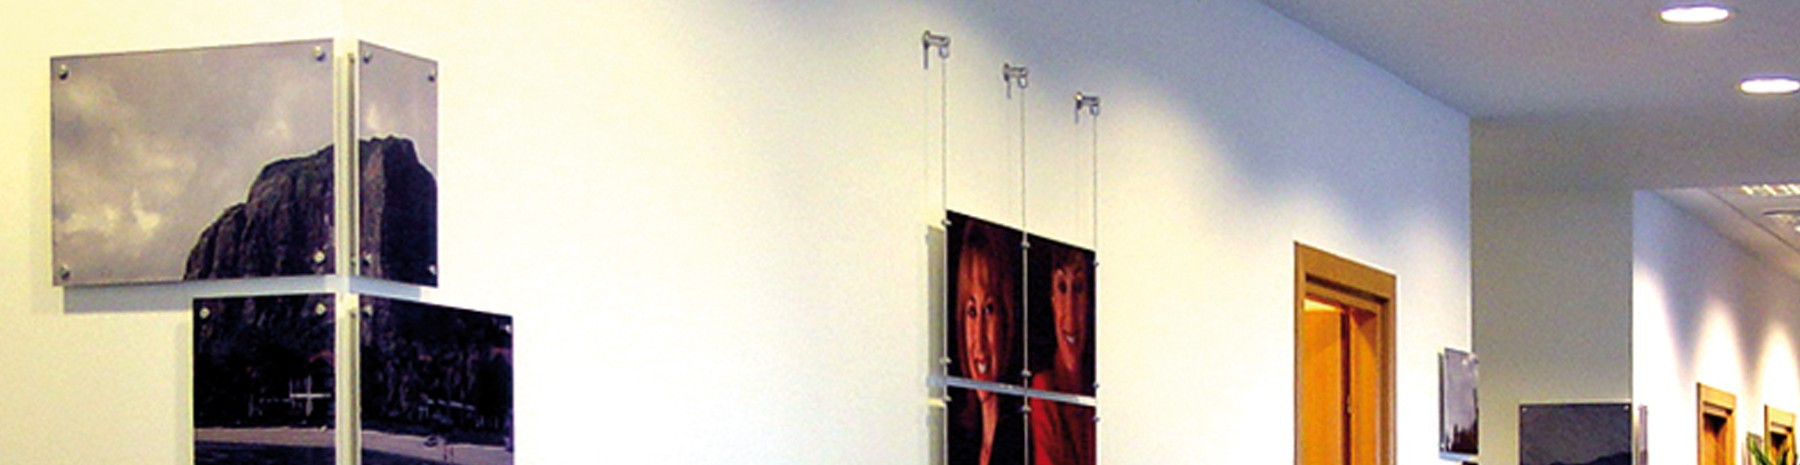 Panel Support made of Aluminium for suspended display